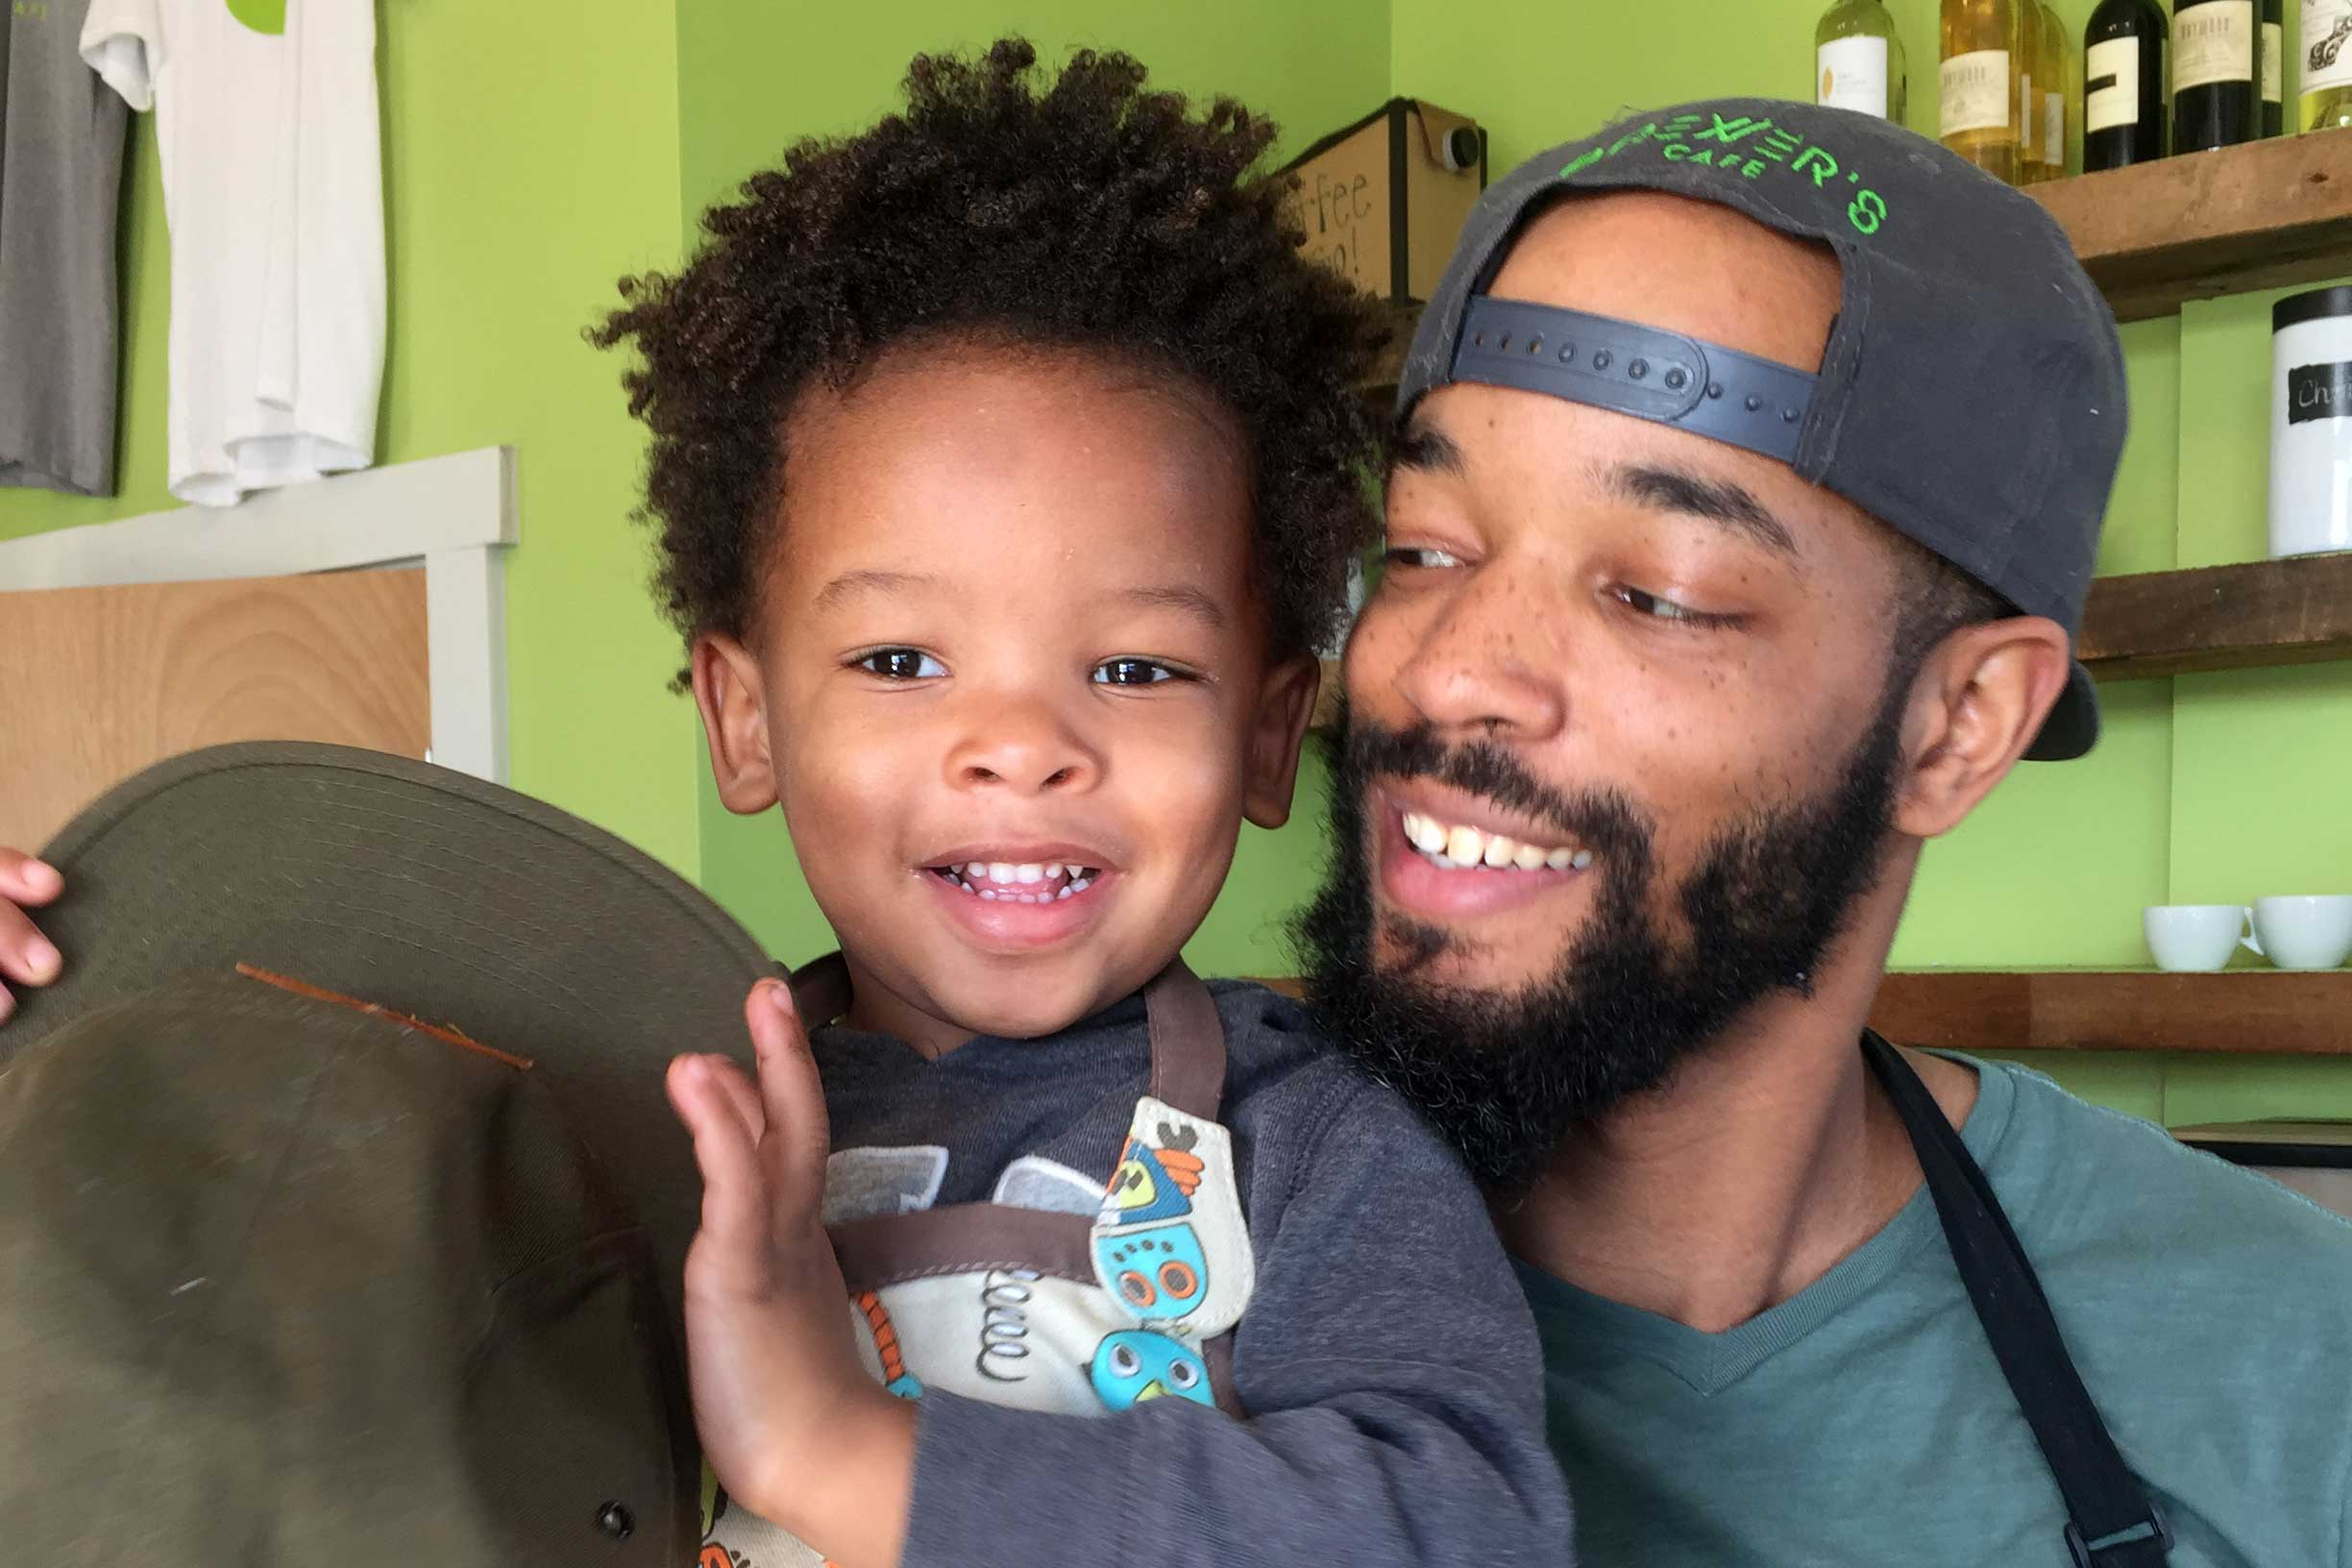 Richmond native A.J. Brewer, pictured here with his 3-year-old son Parker, opened Brewer's Café in 2015. (Photo courtesy of A.J. Brewer.)